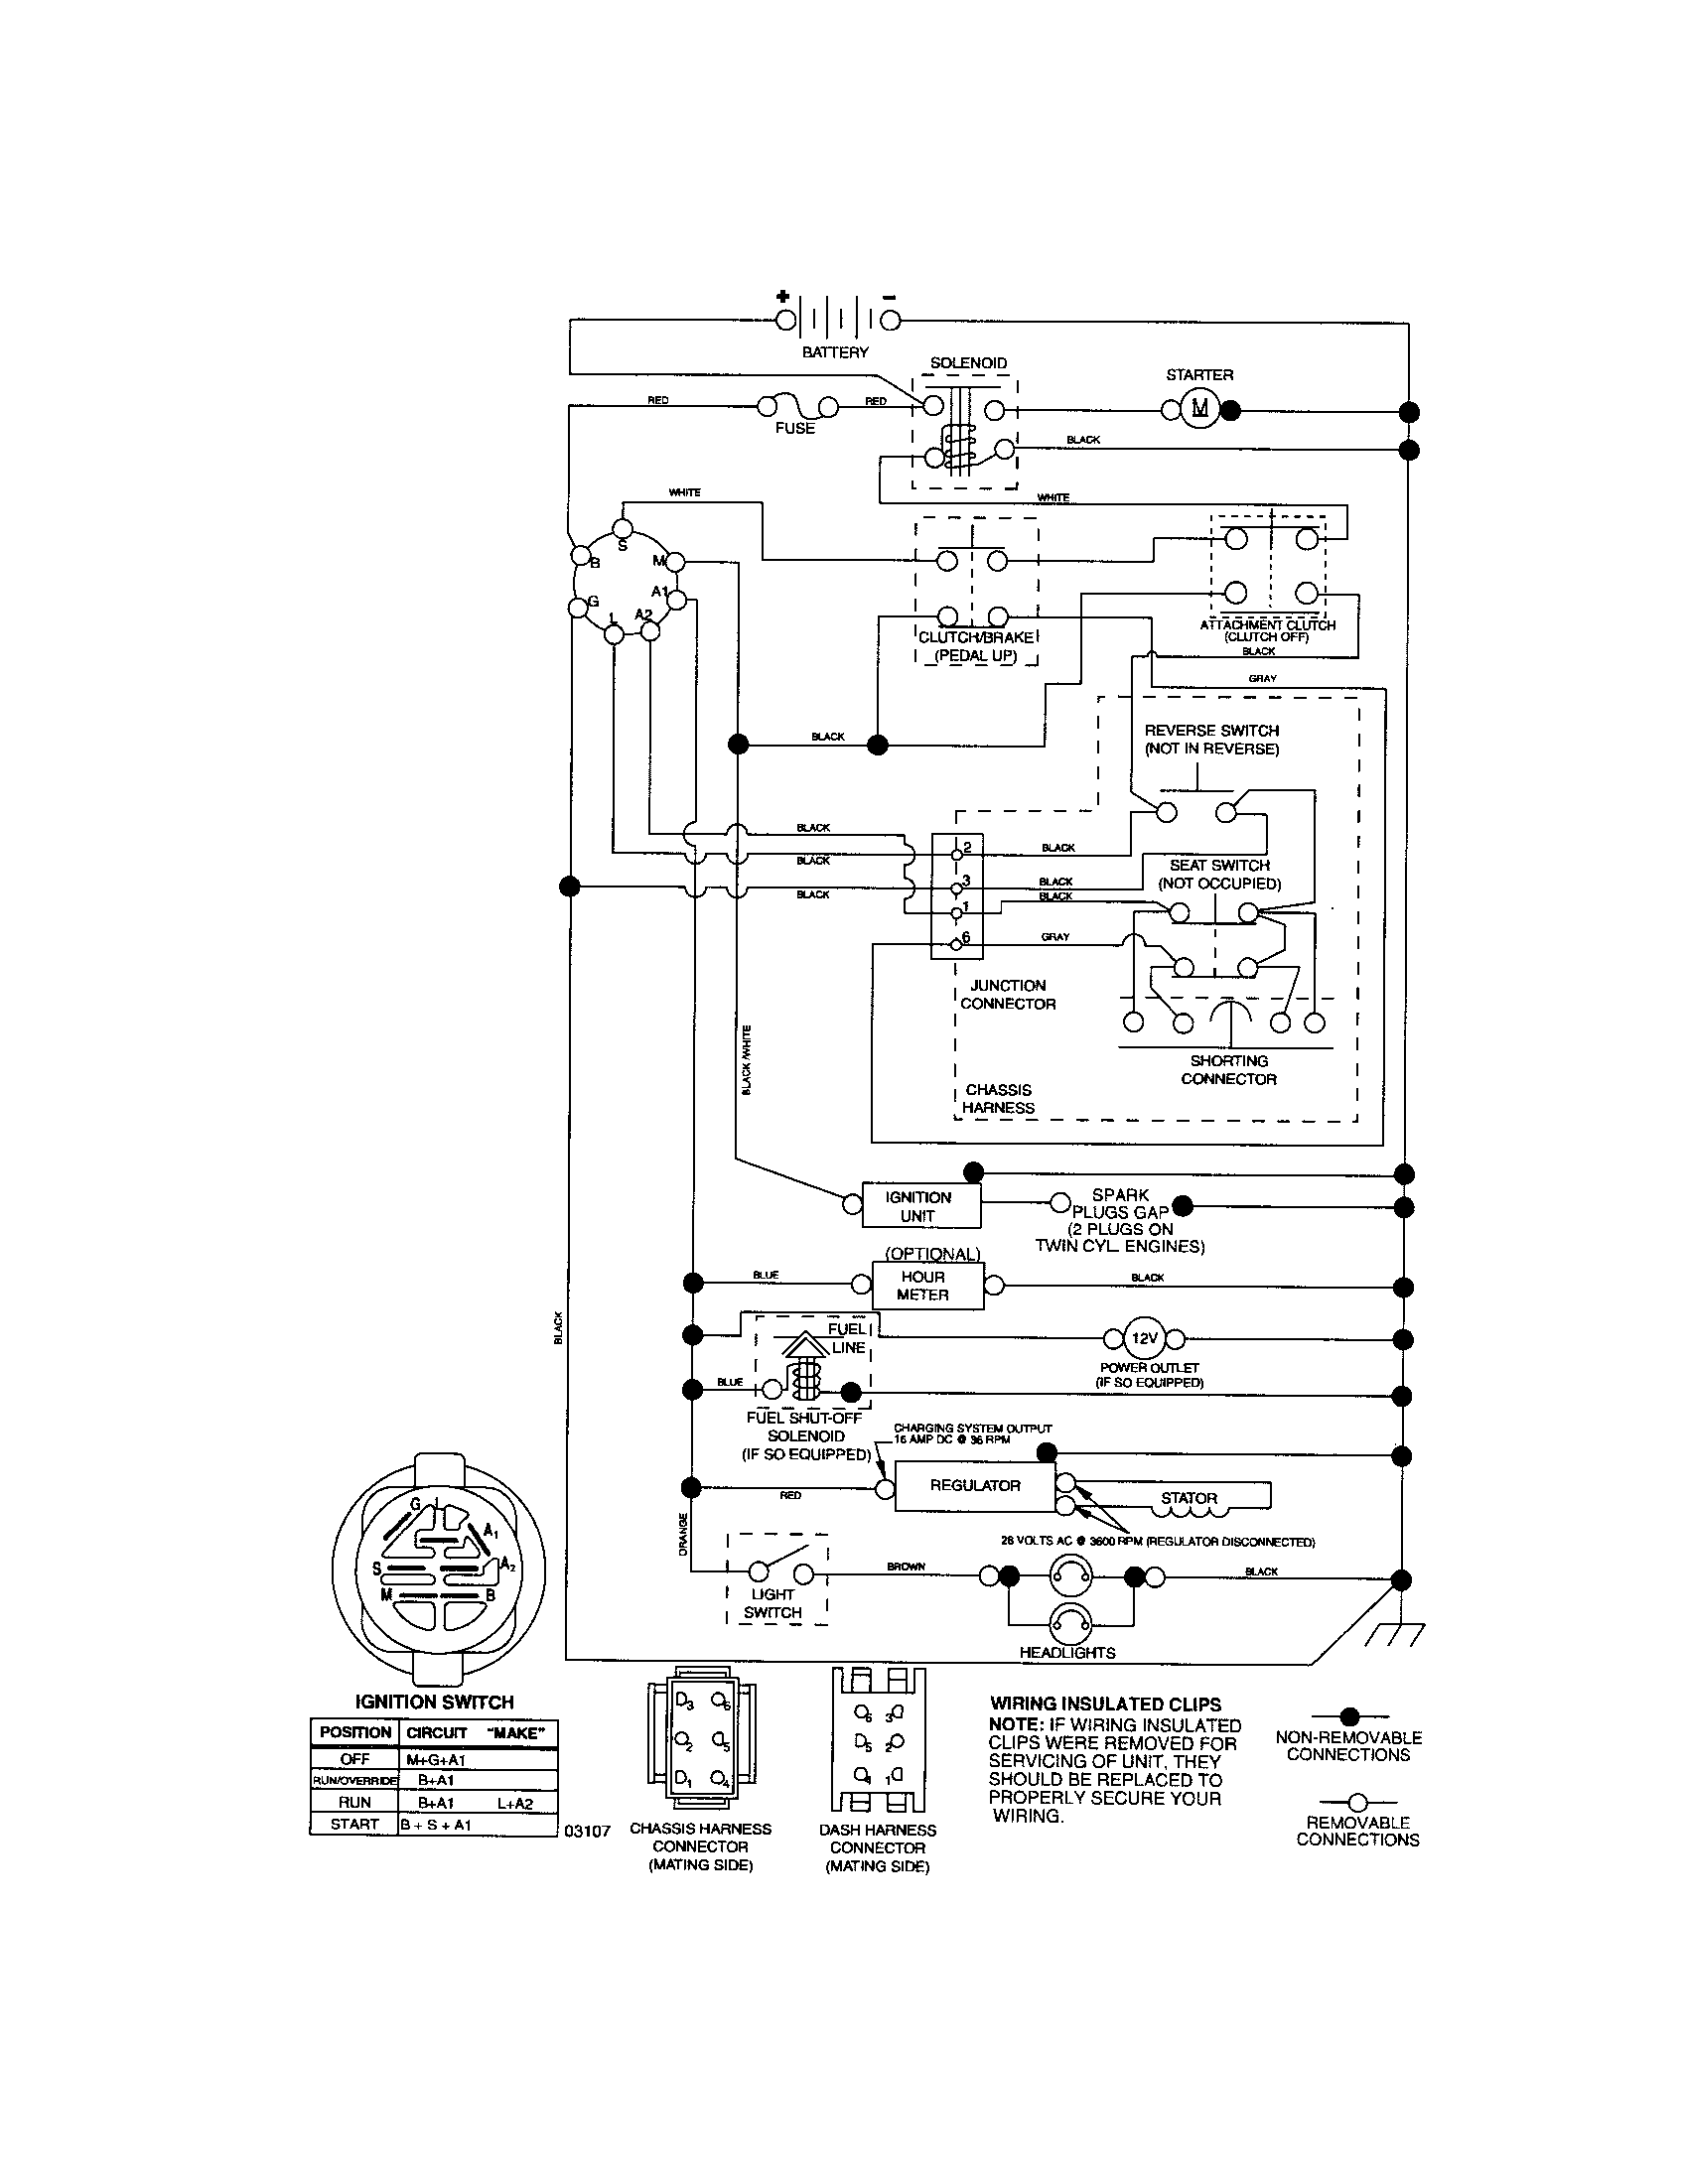 Craftsman Riding Mower Electrical Diagram Wiring Diagram craftsman